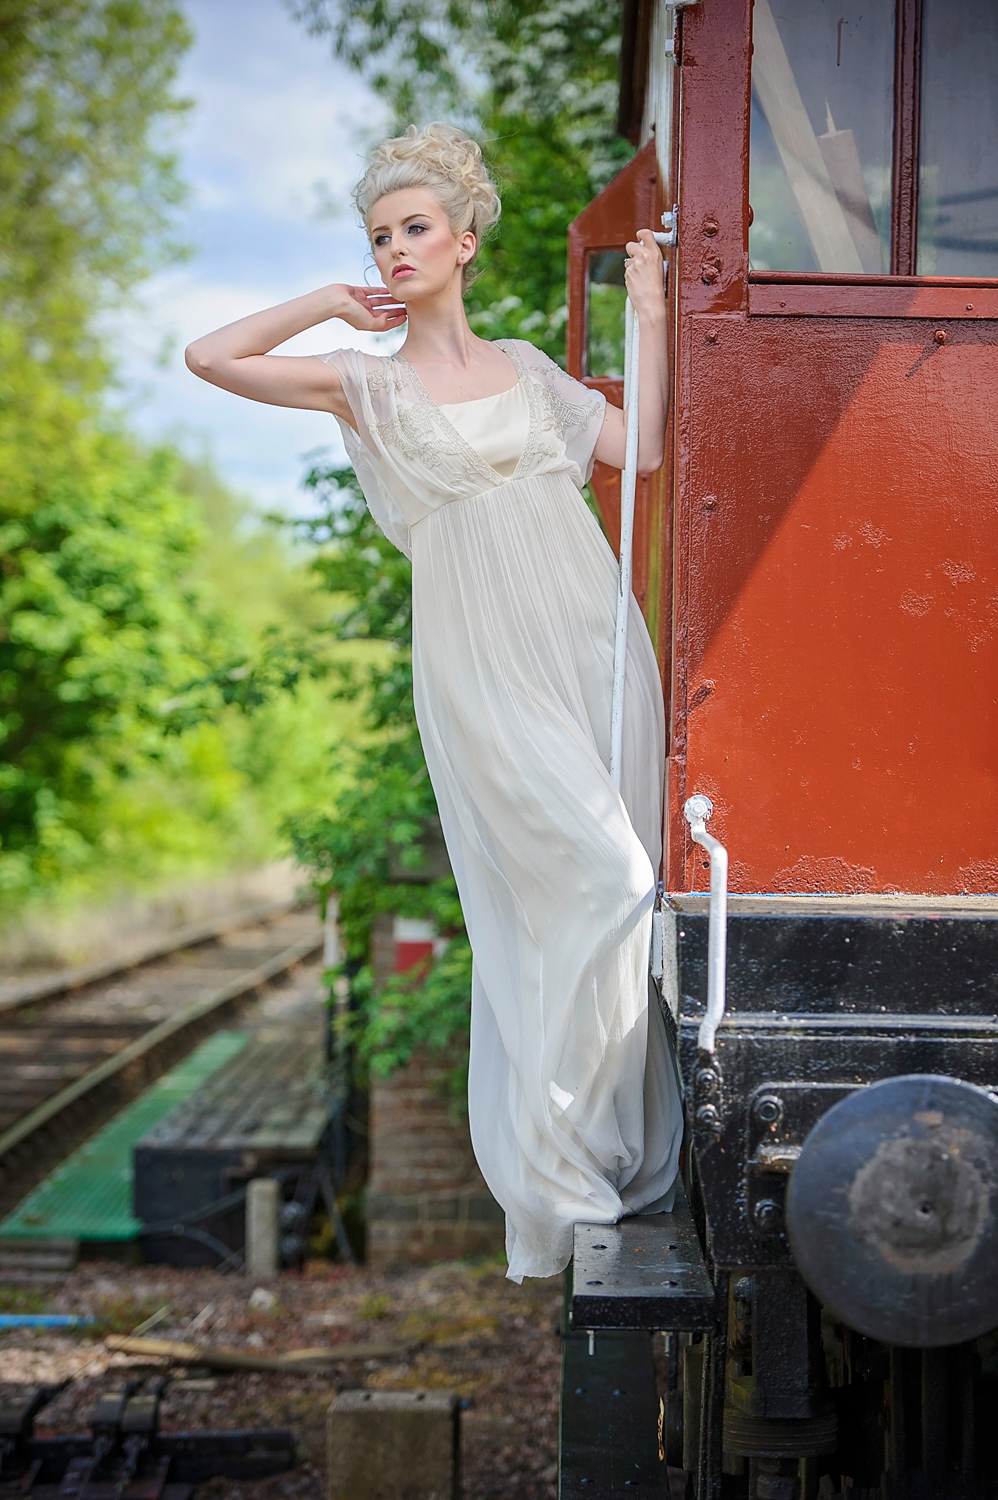 amber-tutton-model-pengelly-photography-colne-valley-railway-railway-bridal-shoot-6